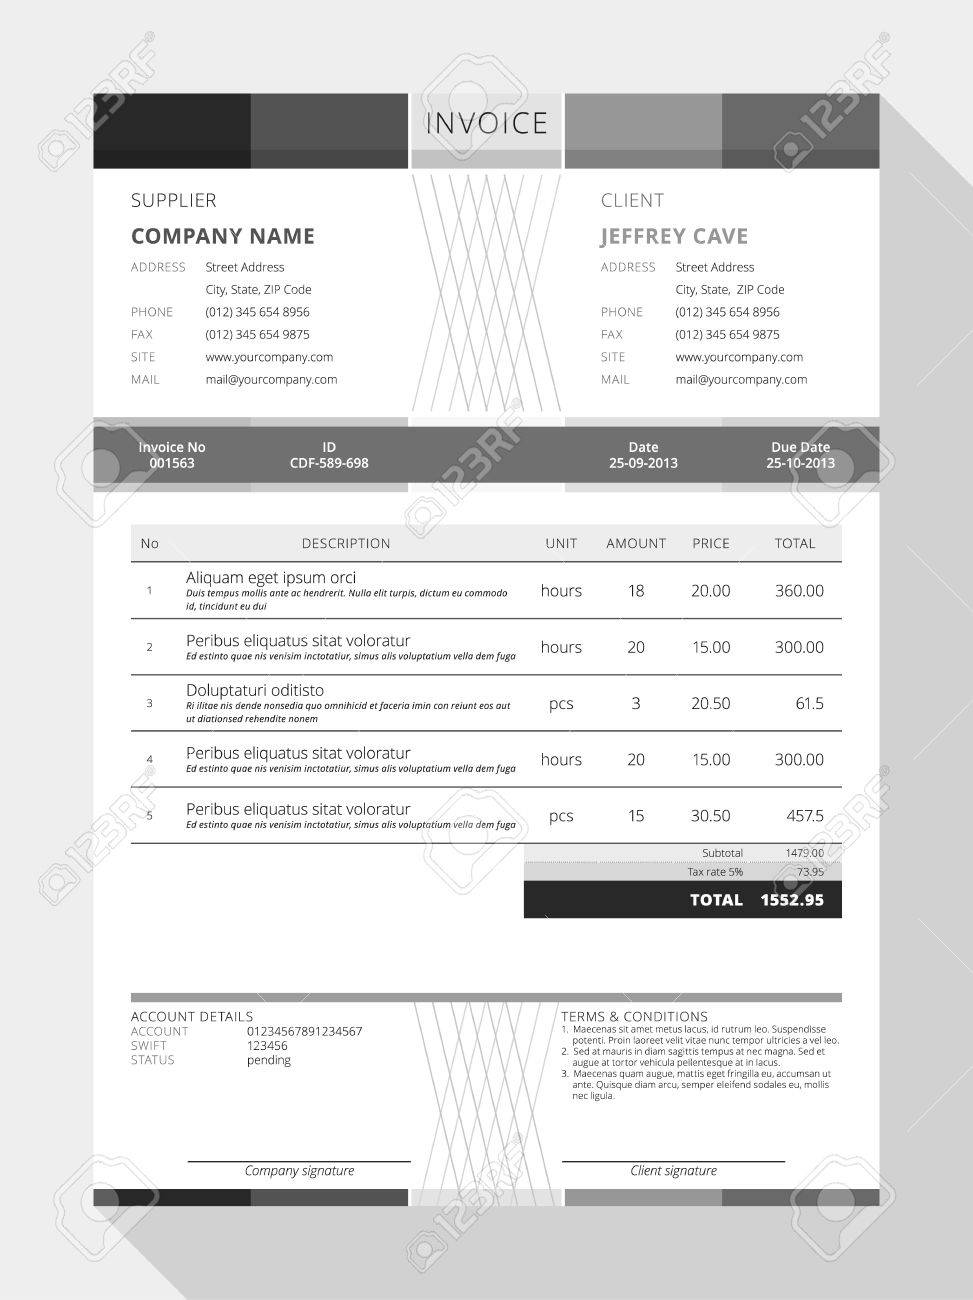 Soulfulpowerus  Personable Design An Invoice  Professional Graphic Design Invoice  With Excellent Vector Customizable Invoice Form Template Design Vector   Design An Invoice With Cool Receipts Online Free Also Passenger Itinerary Receipt In Addition Receipt For Private Car Sale And Bill Payment Receipt Format As Well As Inkjet Receipt Printer Additionally Receipt Of House Rent From Happytomco With Soulfulpowerus  Excellent Design An Invoice  Professional Graphic Design Invoice  With Cool Vector Customizable Invoice Form Template Design Vector   Design An Invoice And Personable Receipts Online Free Also Passenger Itinerary Receipt In Addition Receipt For Private Car Sale From Happytomco